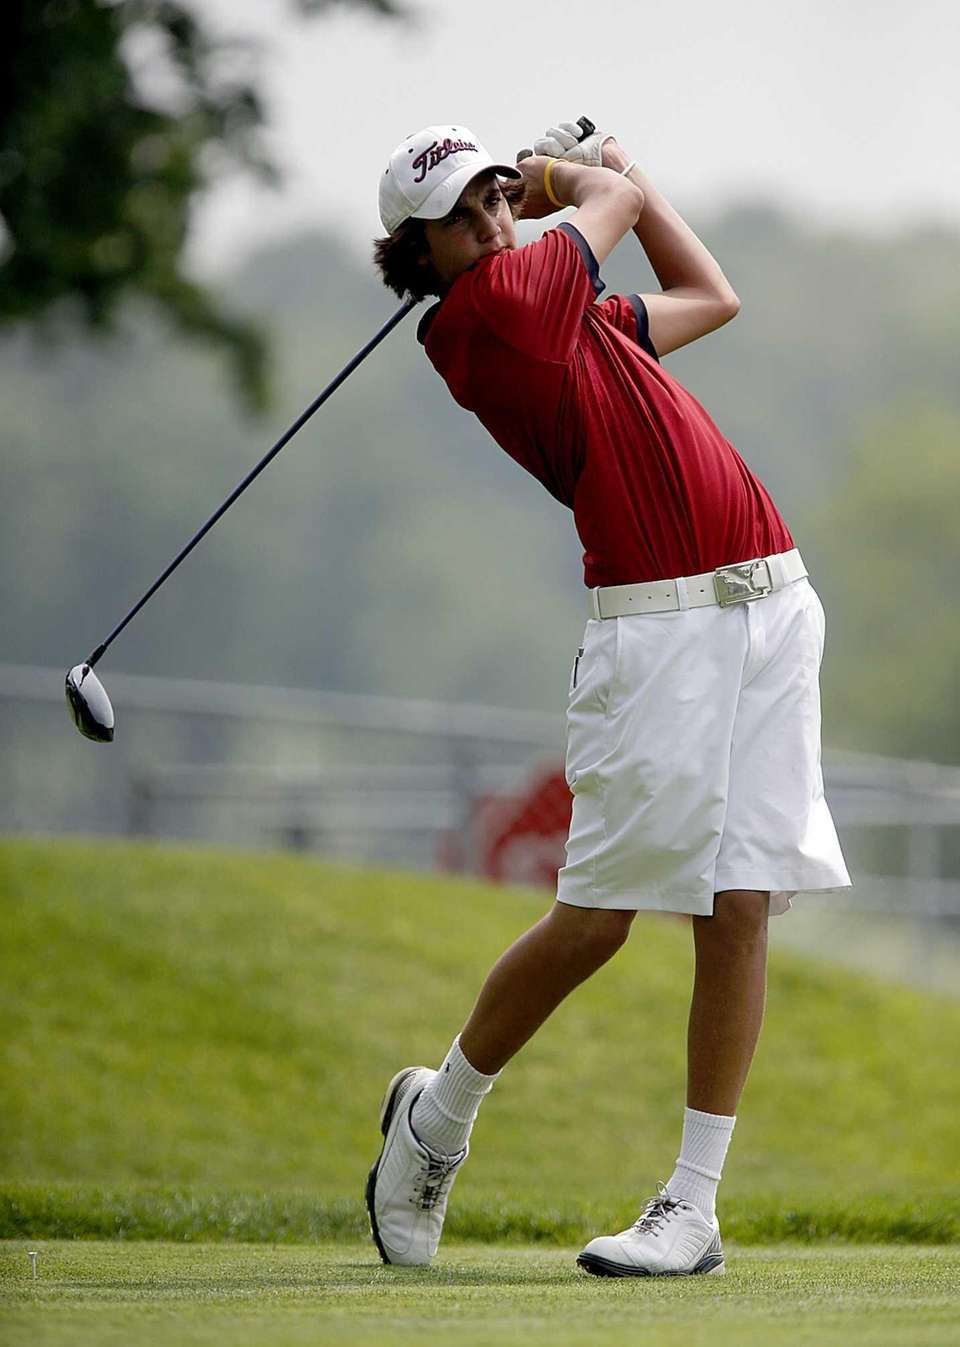 Smithtown East's Jack Truncale tees off on the